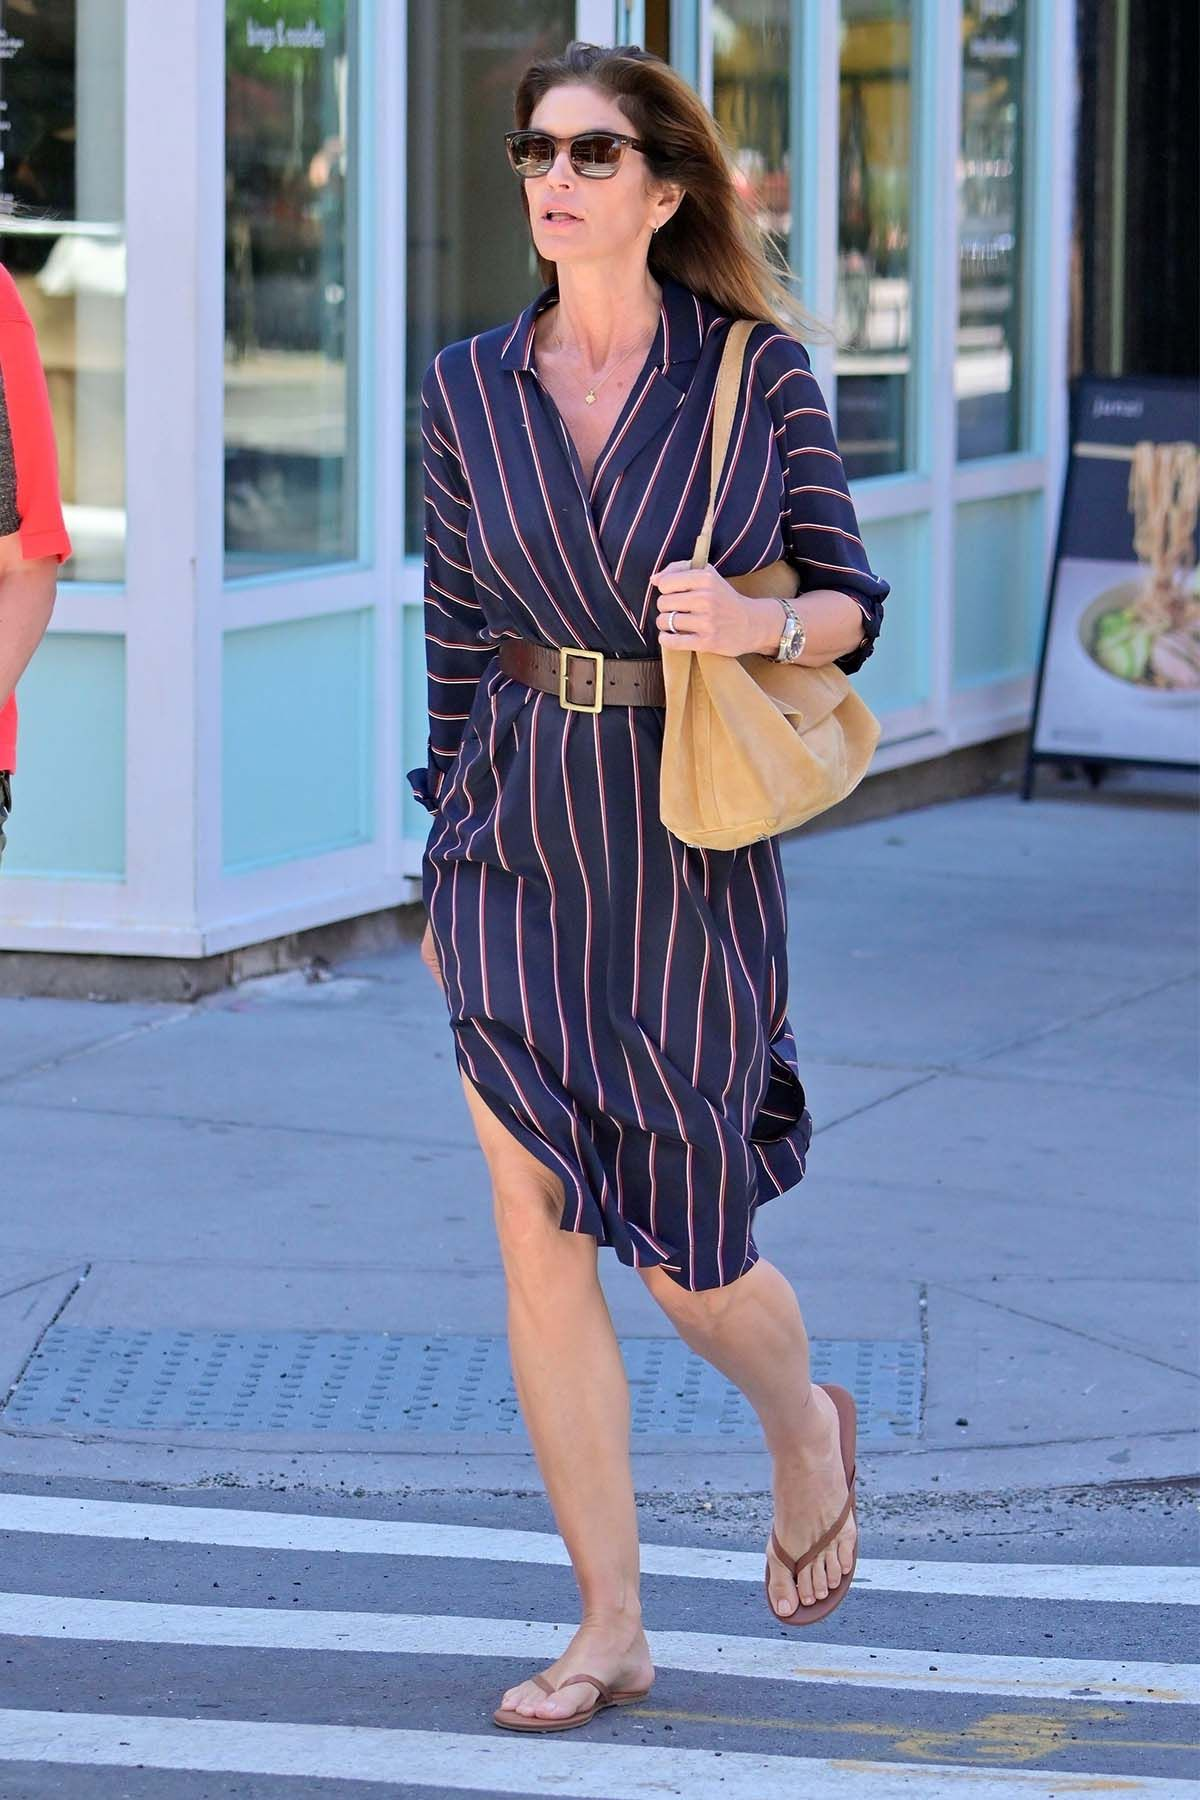 Congrats On Making Flip-Flops Look Chic in NYC, Cindy Crawford